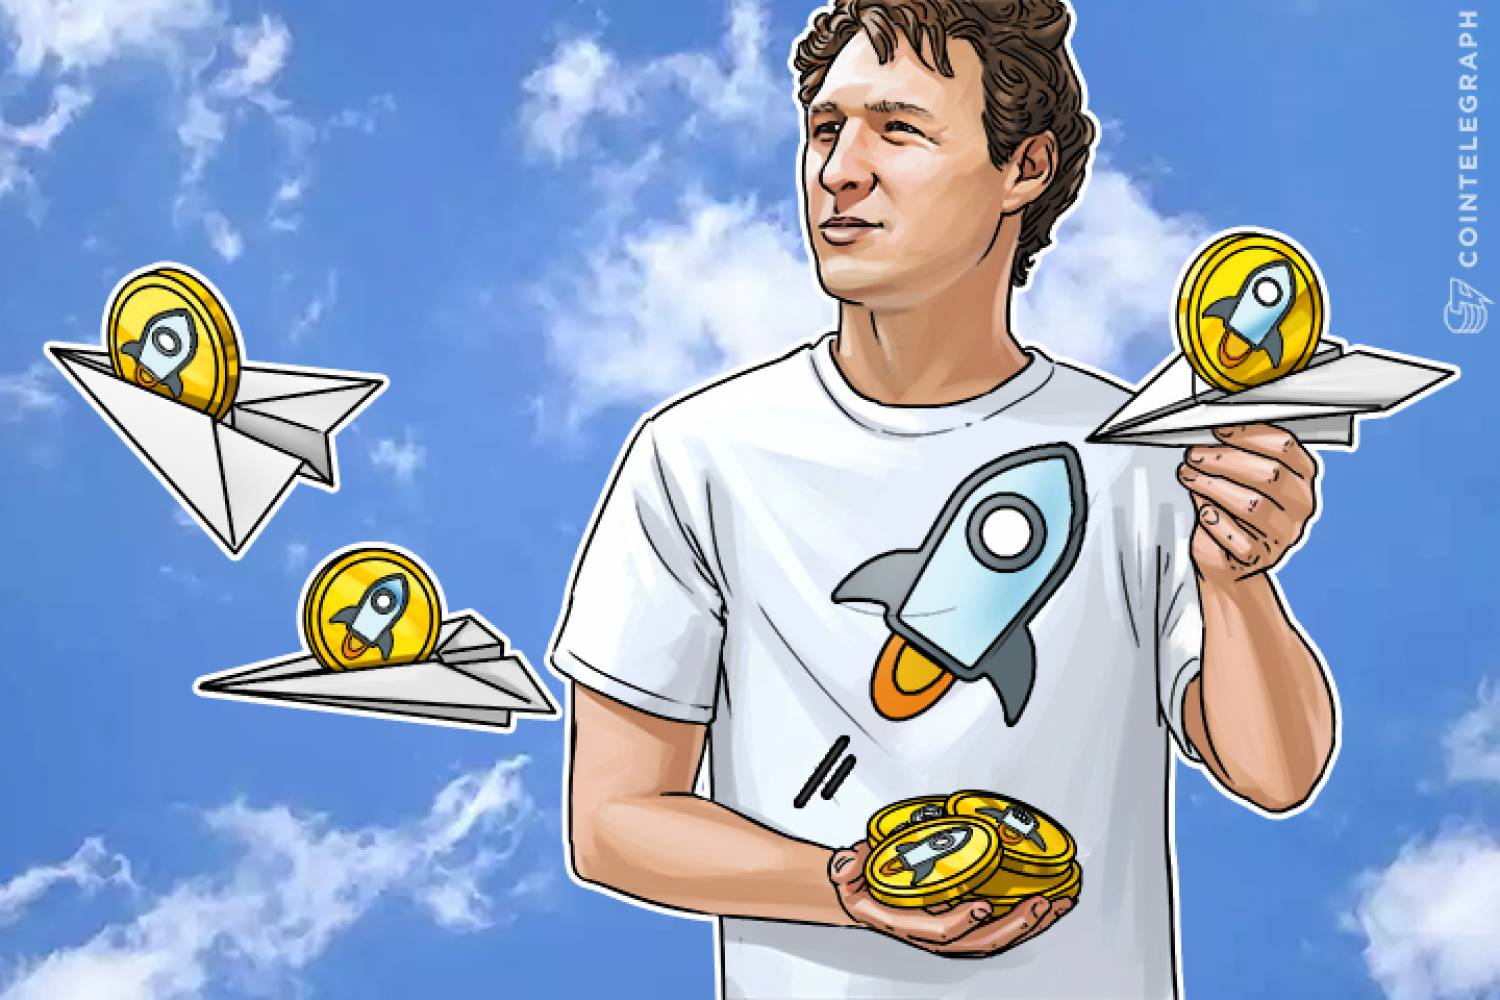 Jed McCaleb, Stellar co-founder